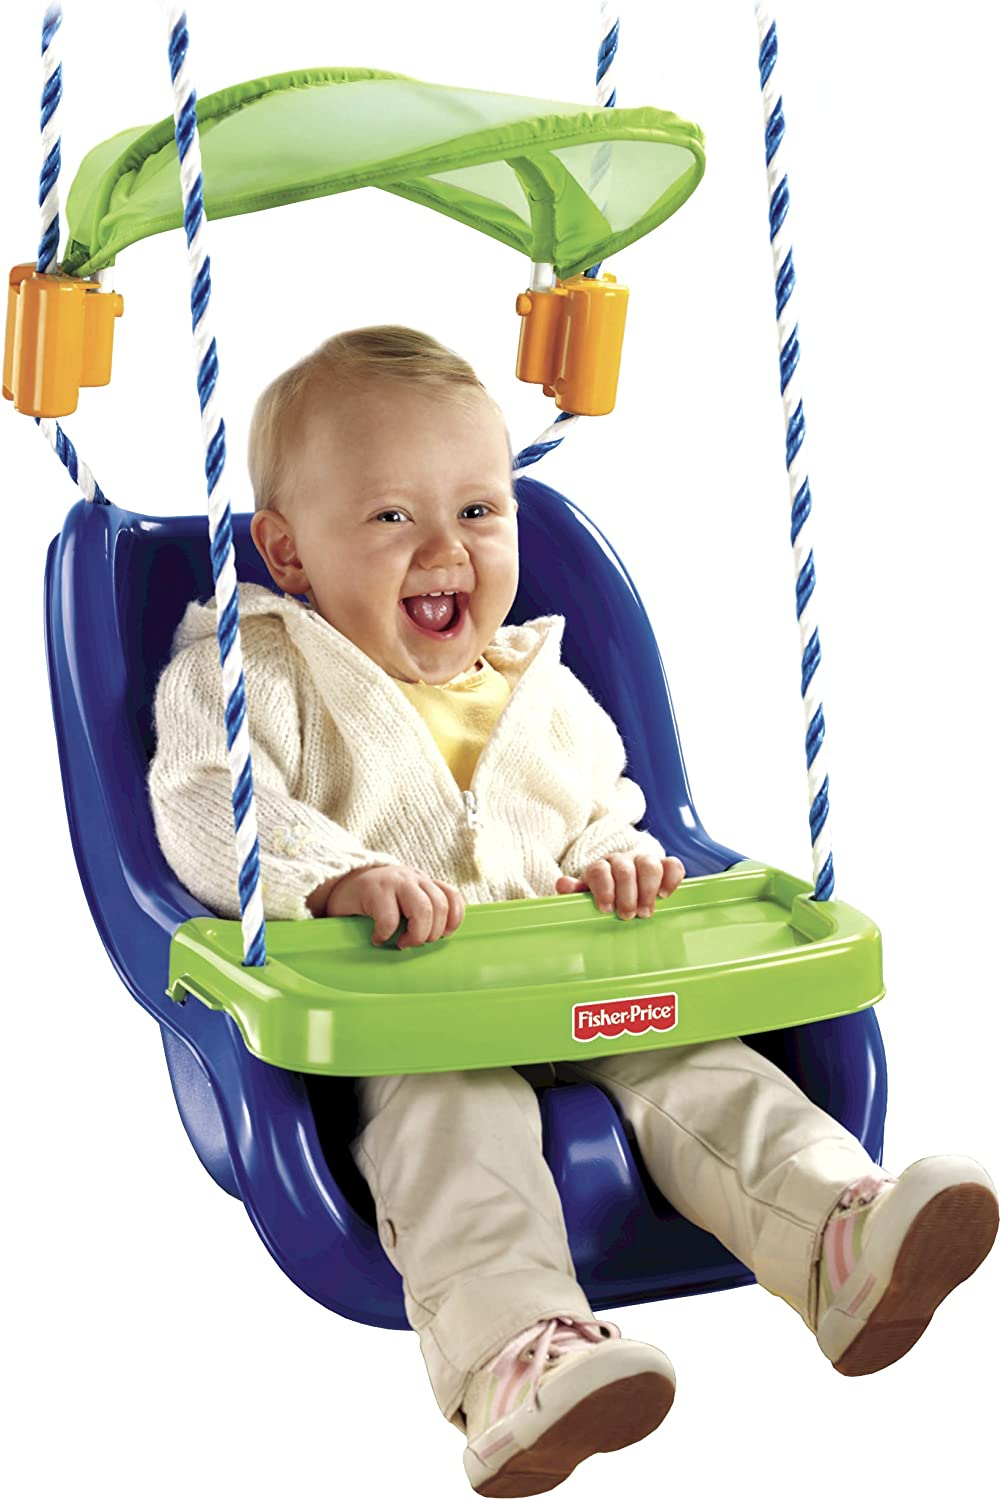 Top 10 Best Outdoor Baby Swing (2020 Reviews & Buying Guide) 1